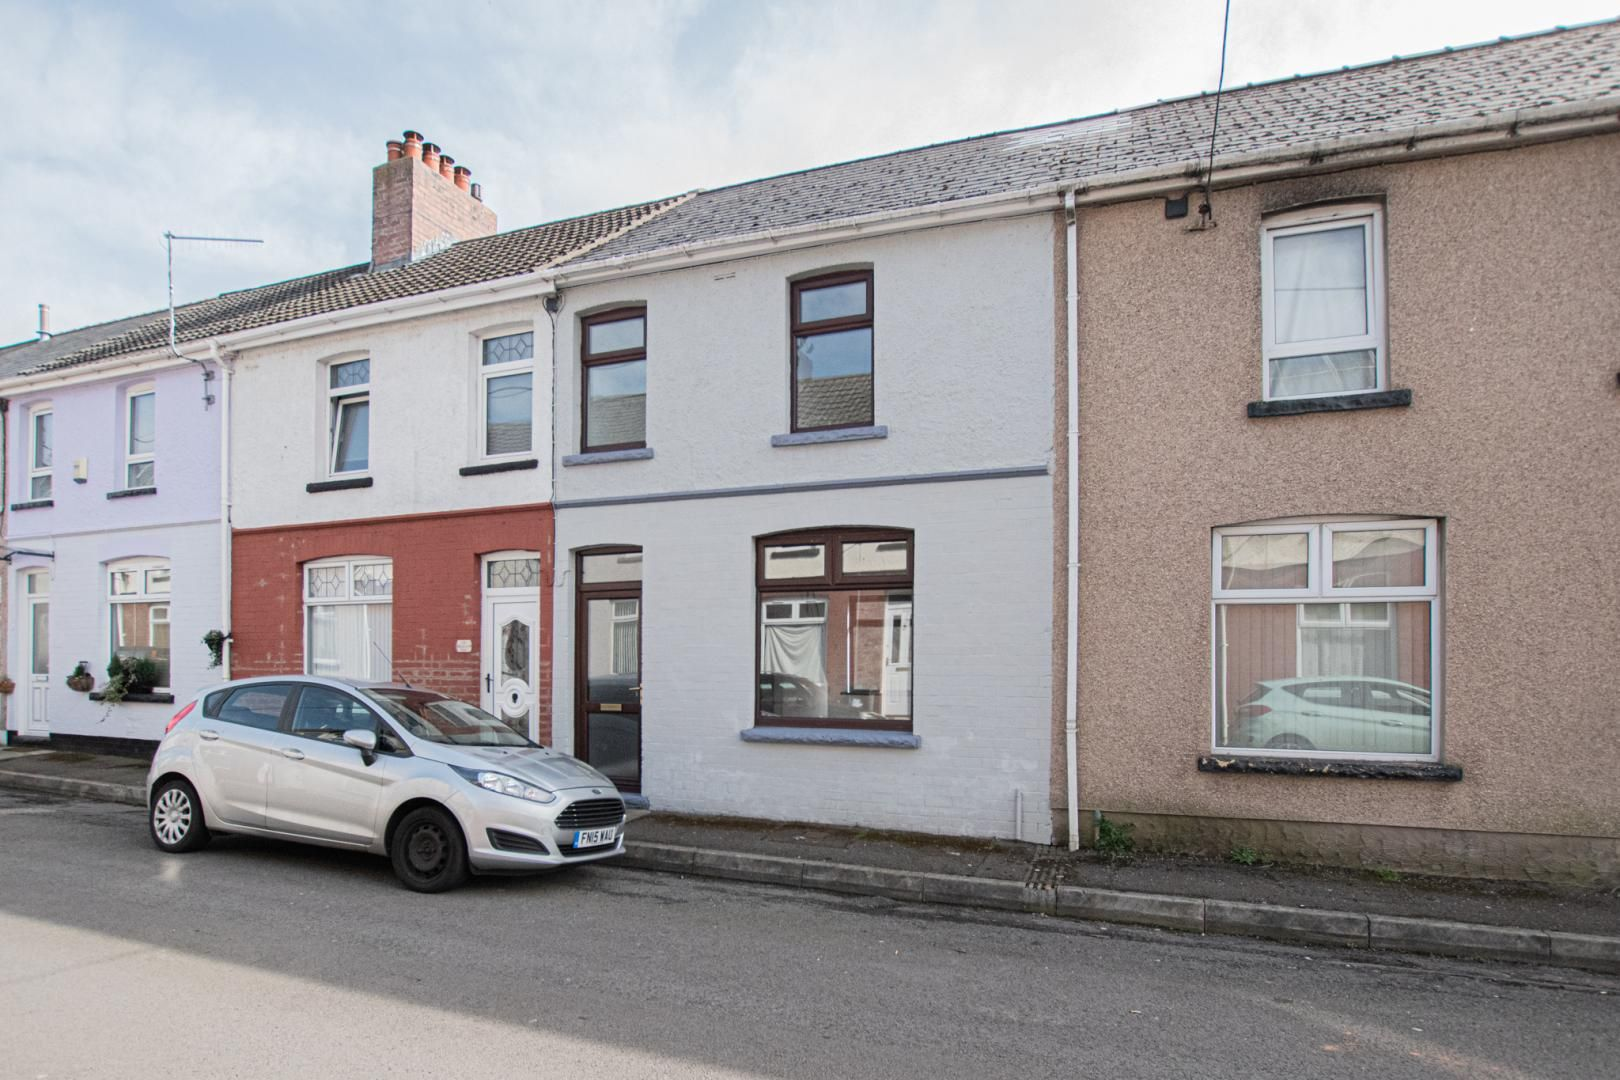 3 bed house to rent in Rectory Road - Property Image 1